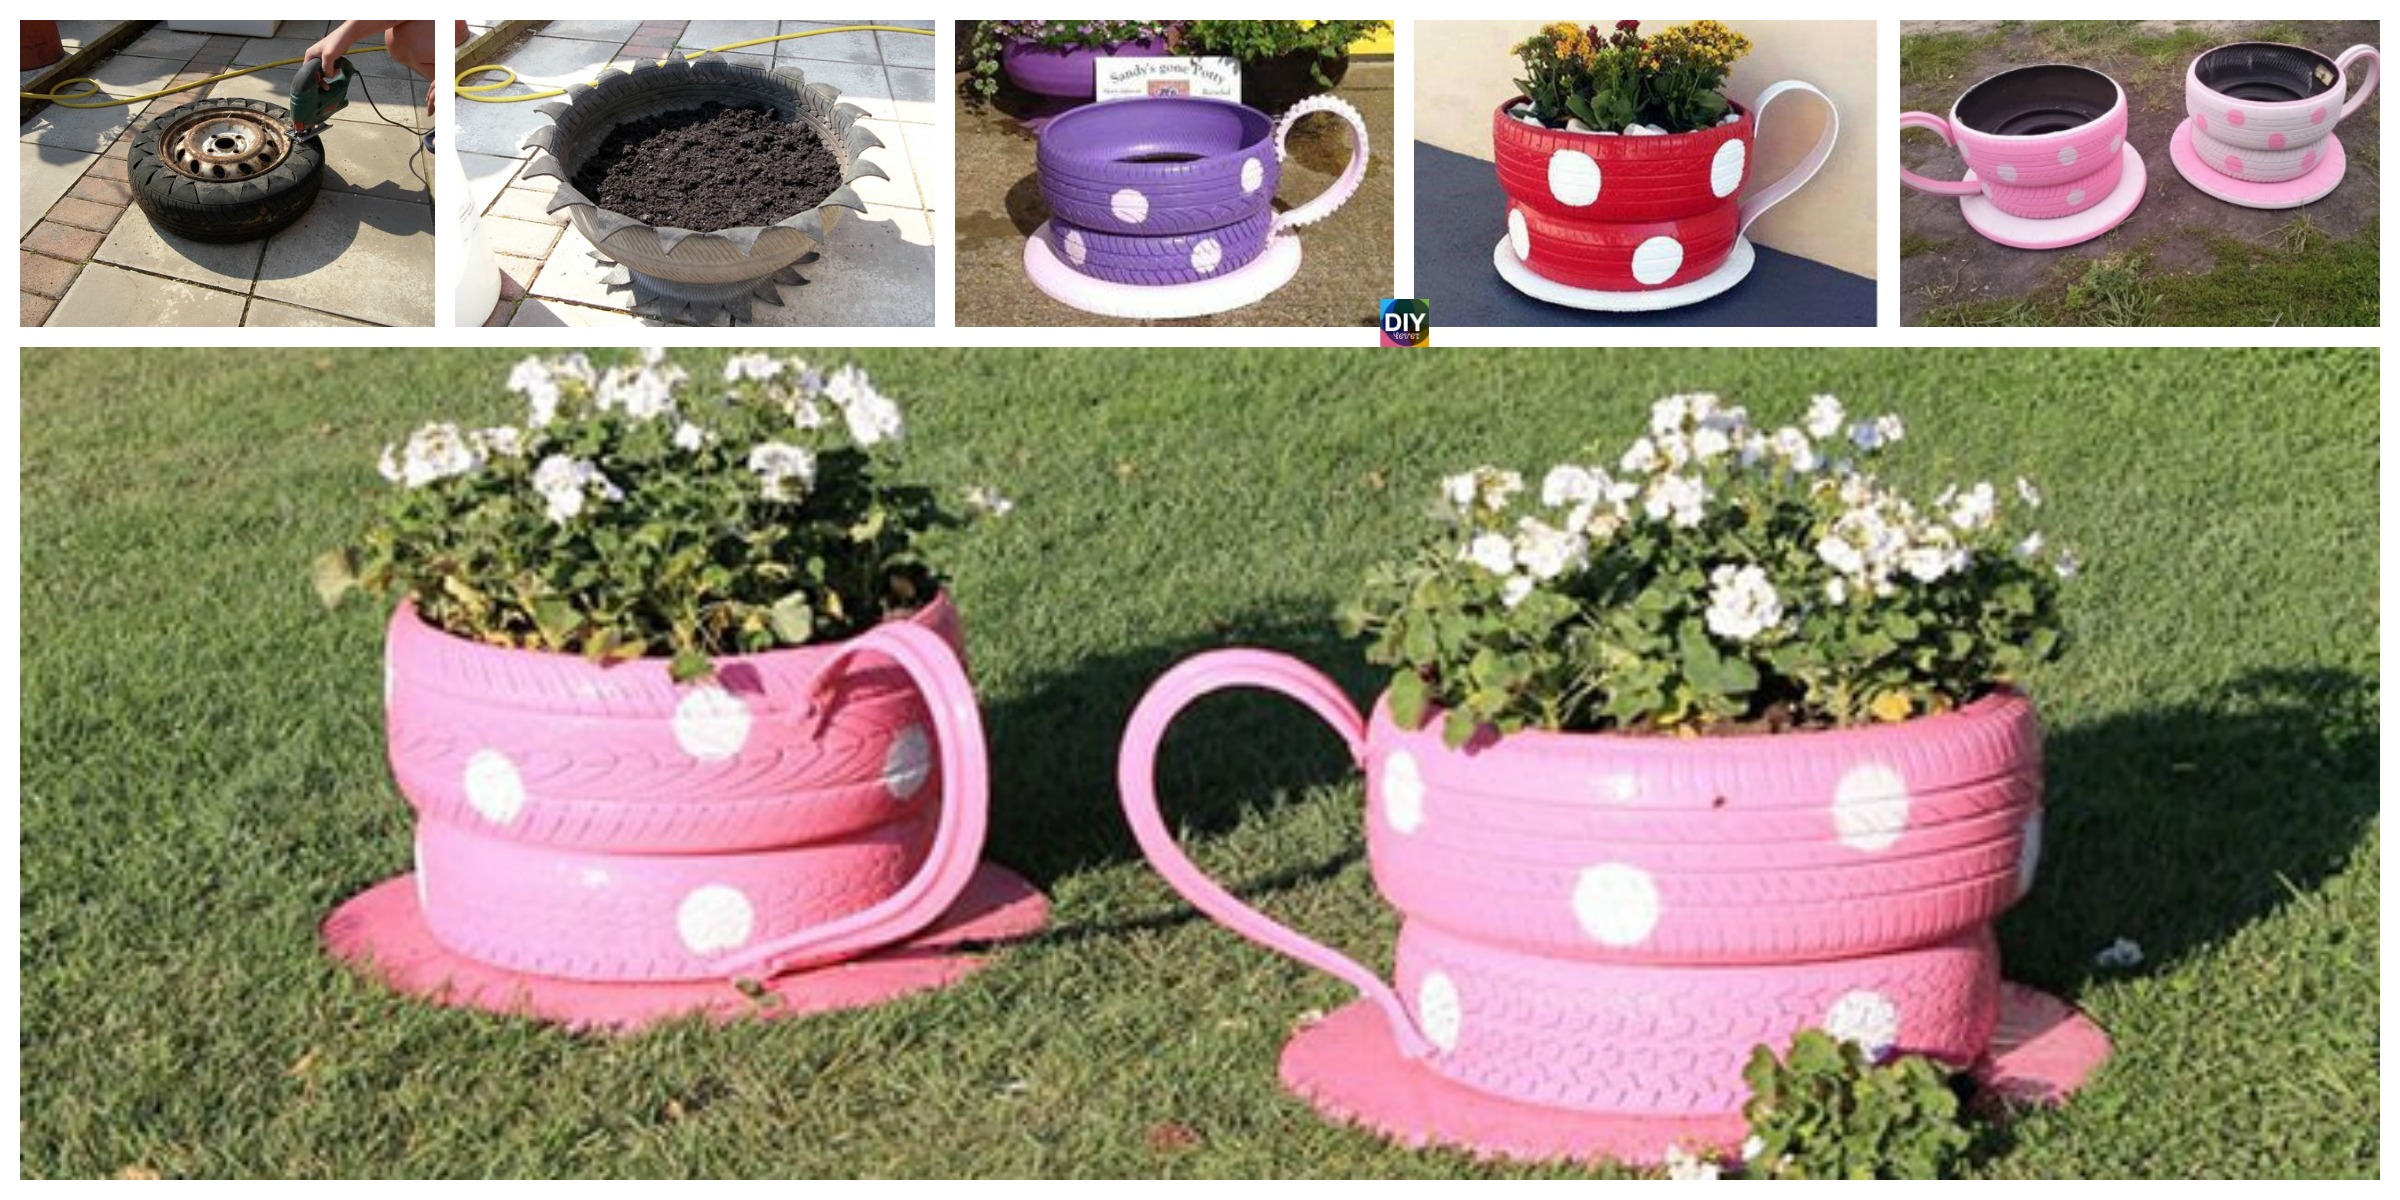 DIY Teacup Tire Planters Step by Step Tutorial